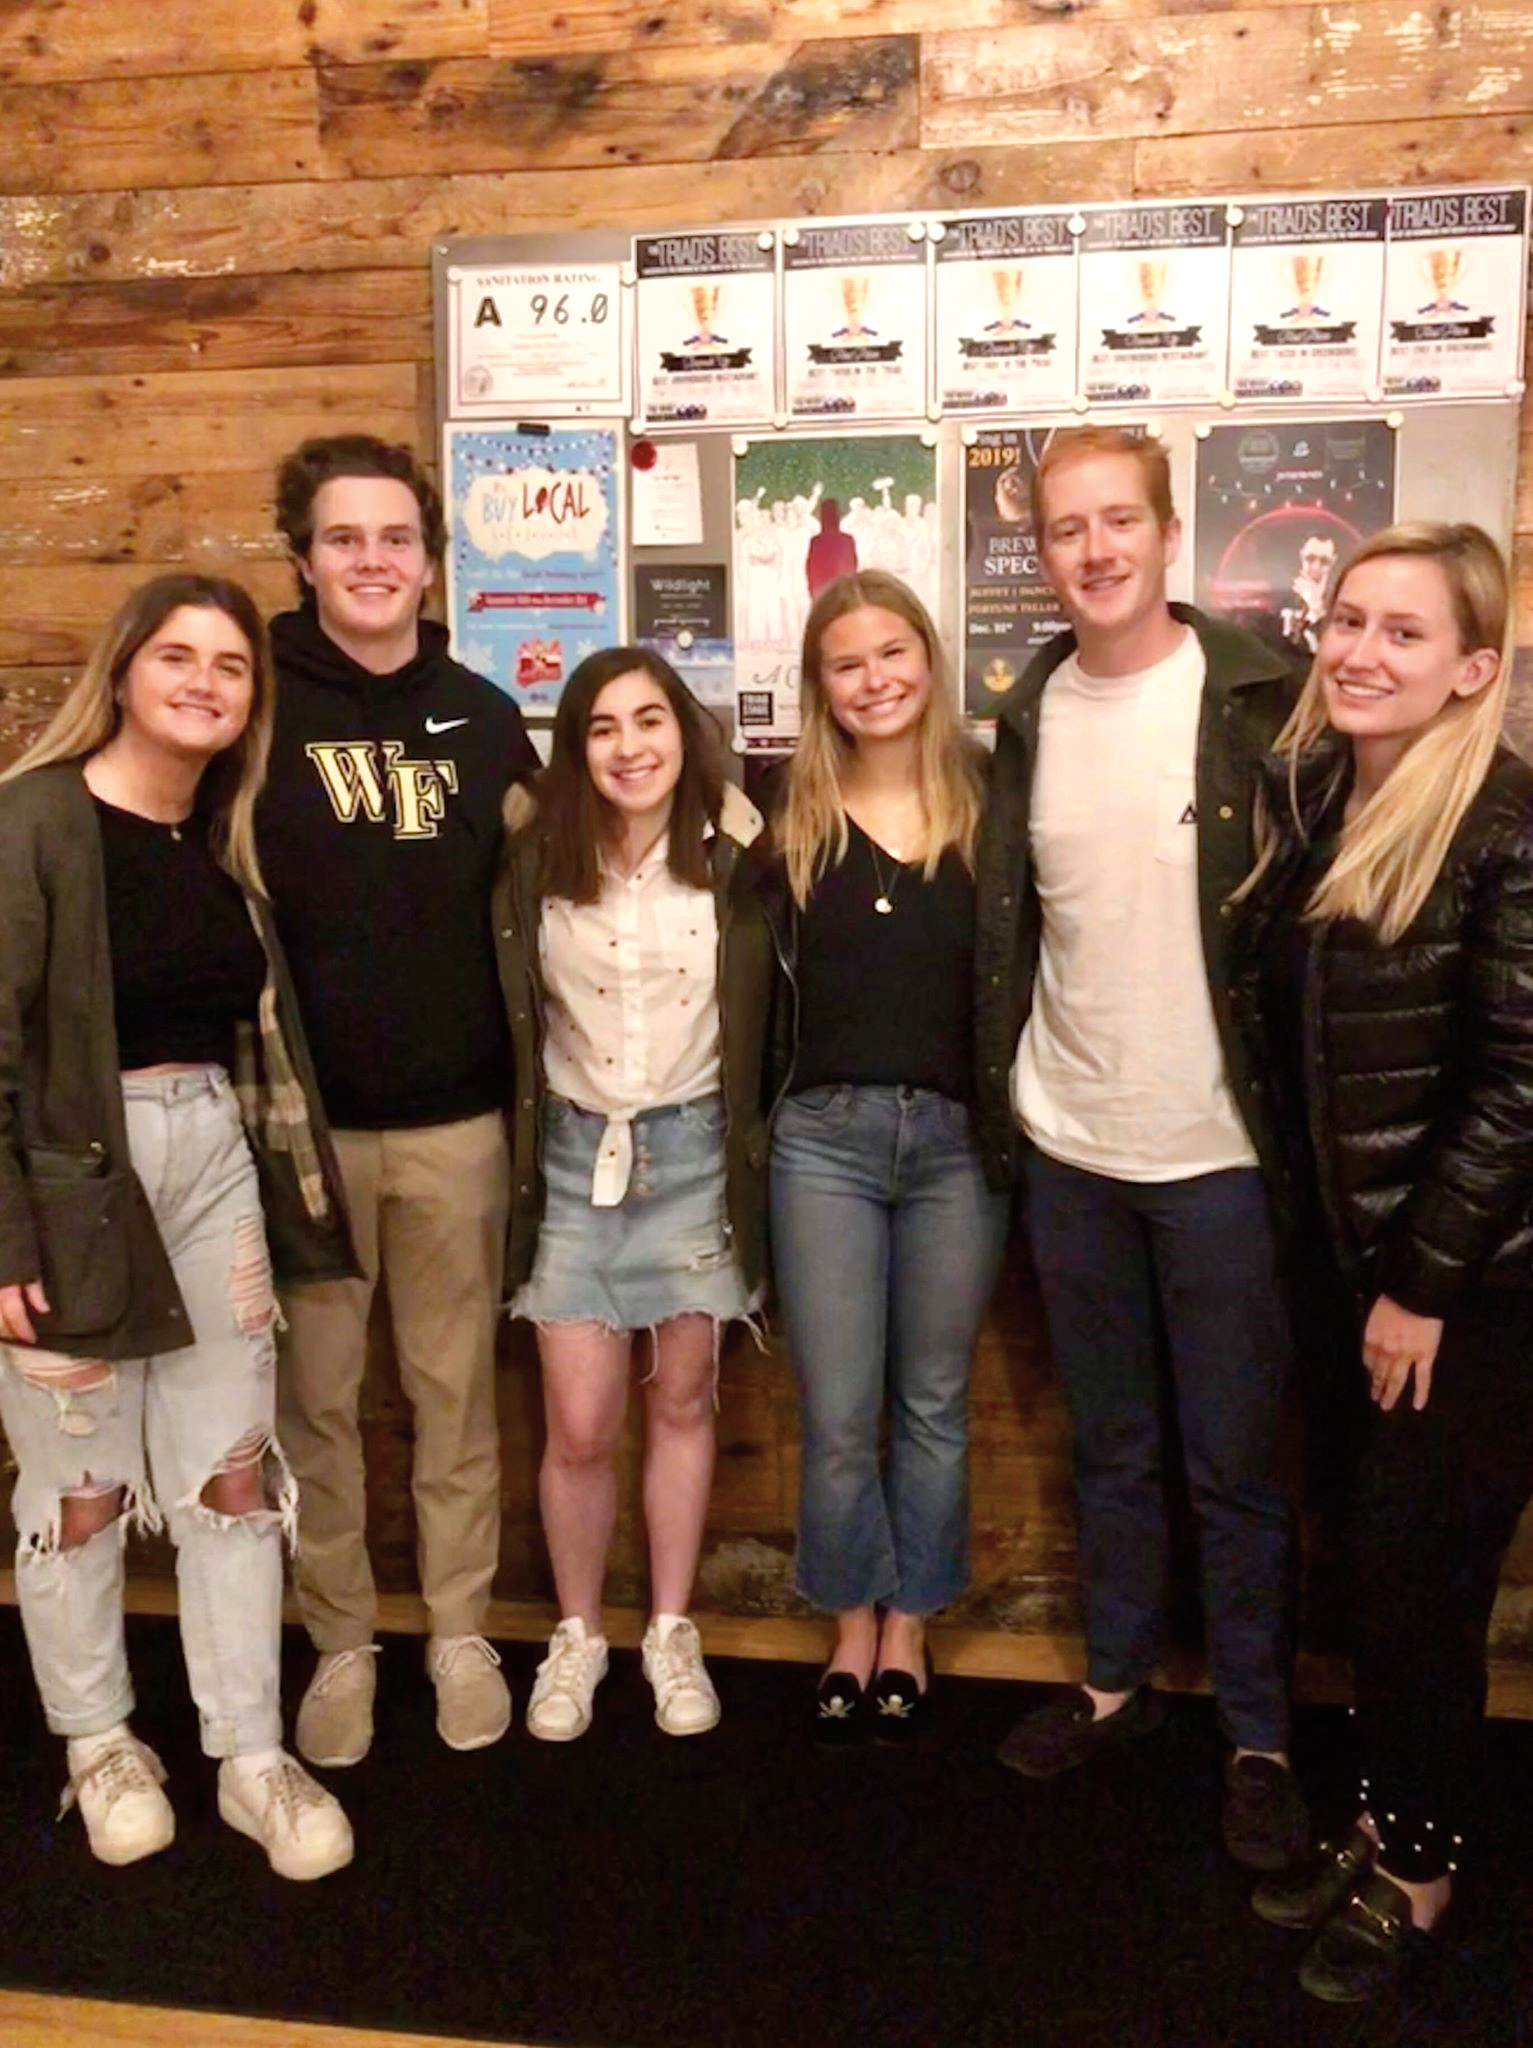 (L. to r.) Avery Van Ingen '18, Kemp Taylor '18, Lauren Neal '18, Libby Lloyd '15, George Hamilton '15, and Mary Eliot Stone '17, all students at Wake Forest, met for dinner in December.